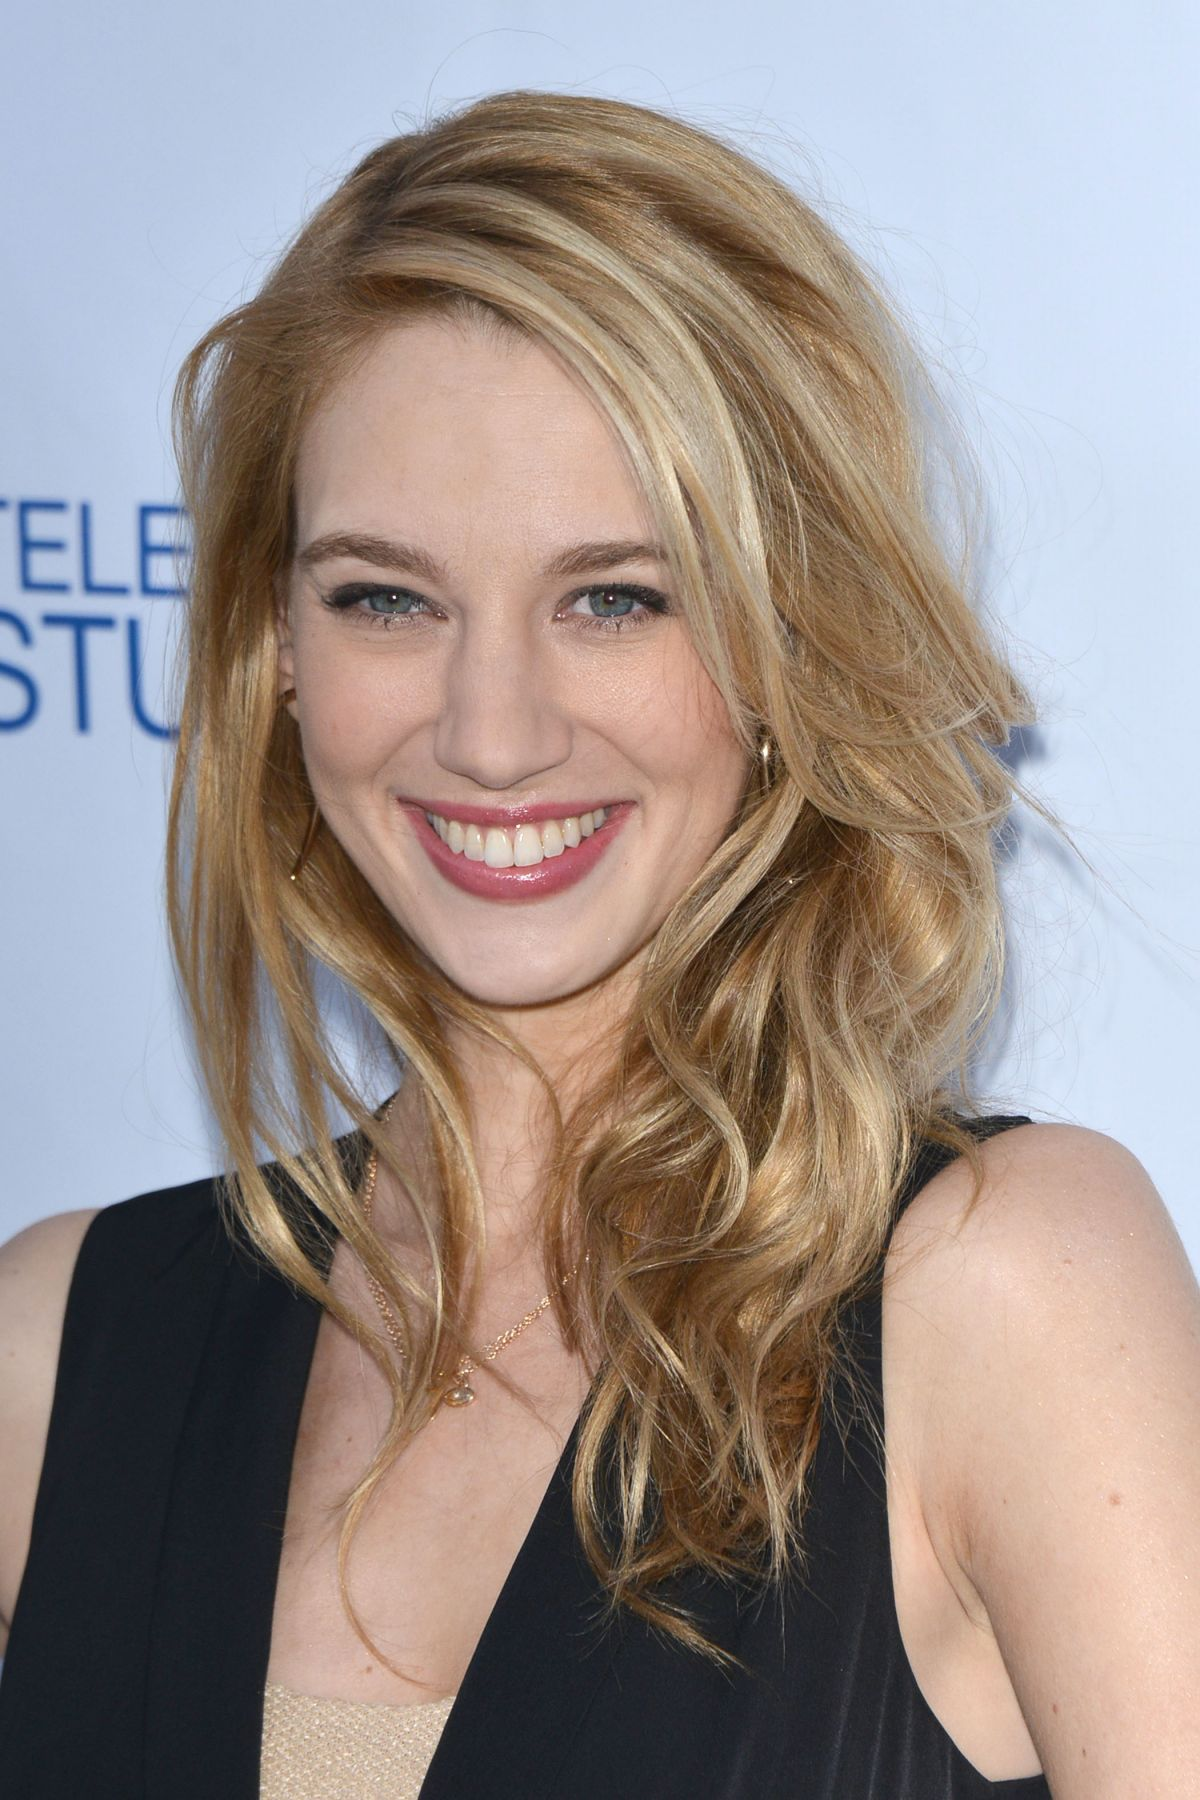 YAEL GROBGLAS at 2015 CBS Summer Soiree in West Hollywood